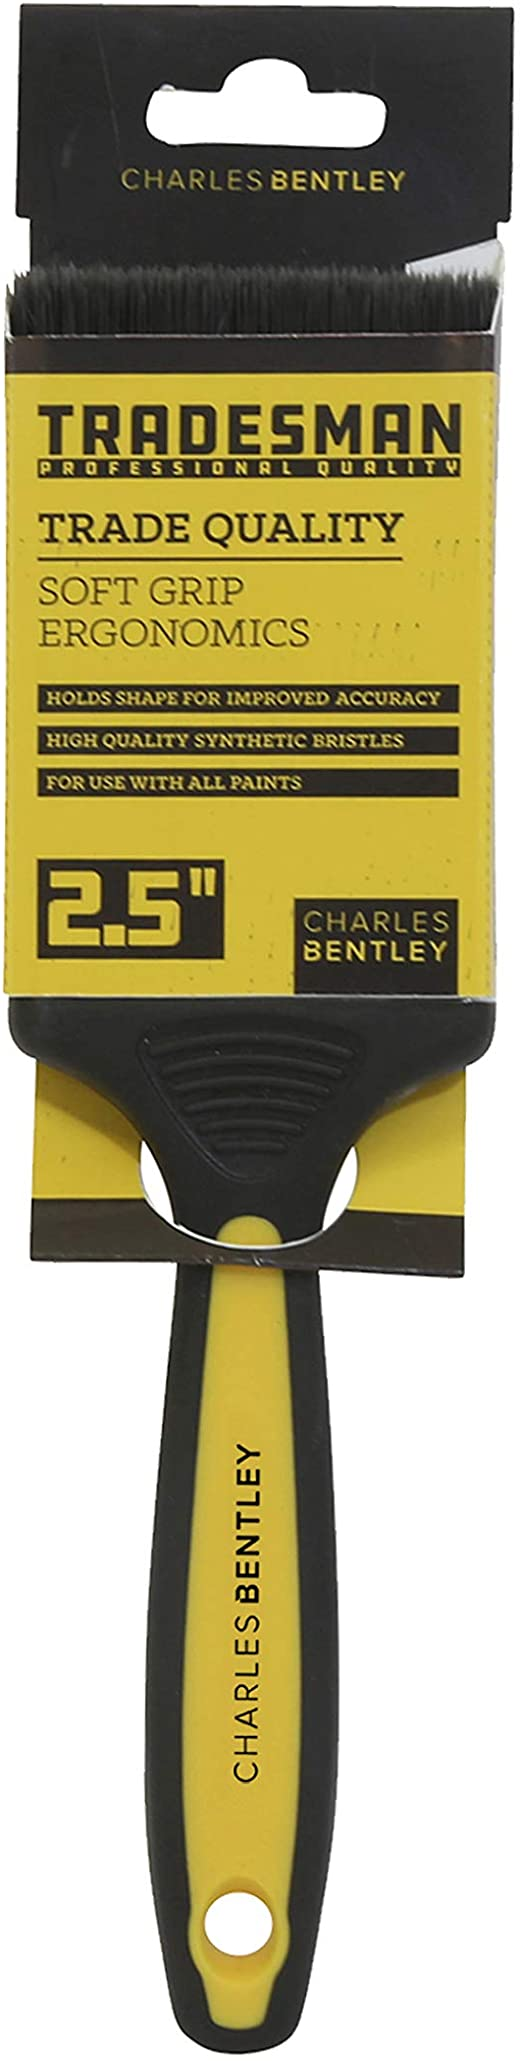 "Charles Bentley Tradesman Paint Brush 2.5"" - DY/990/2.5"